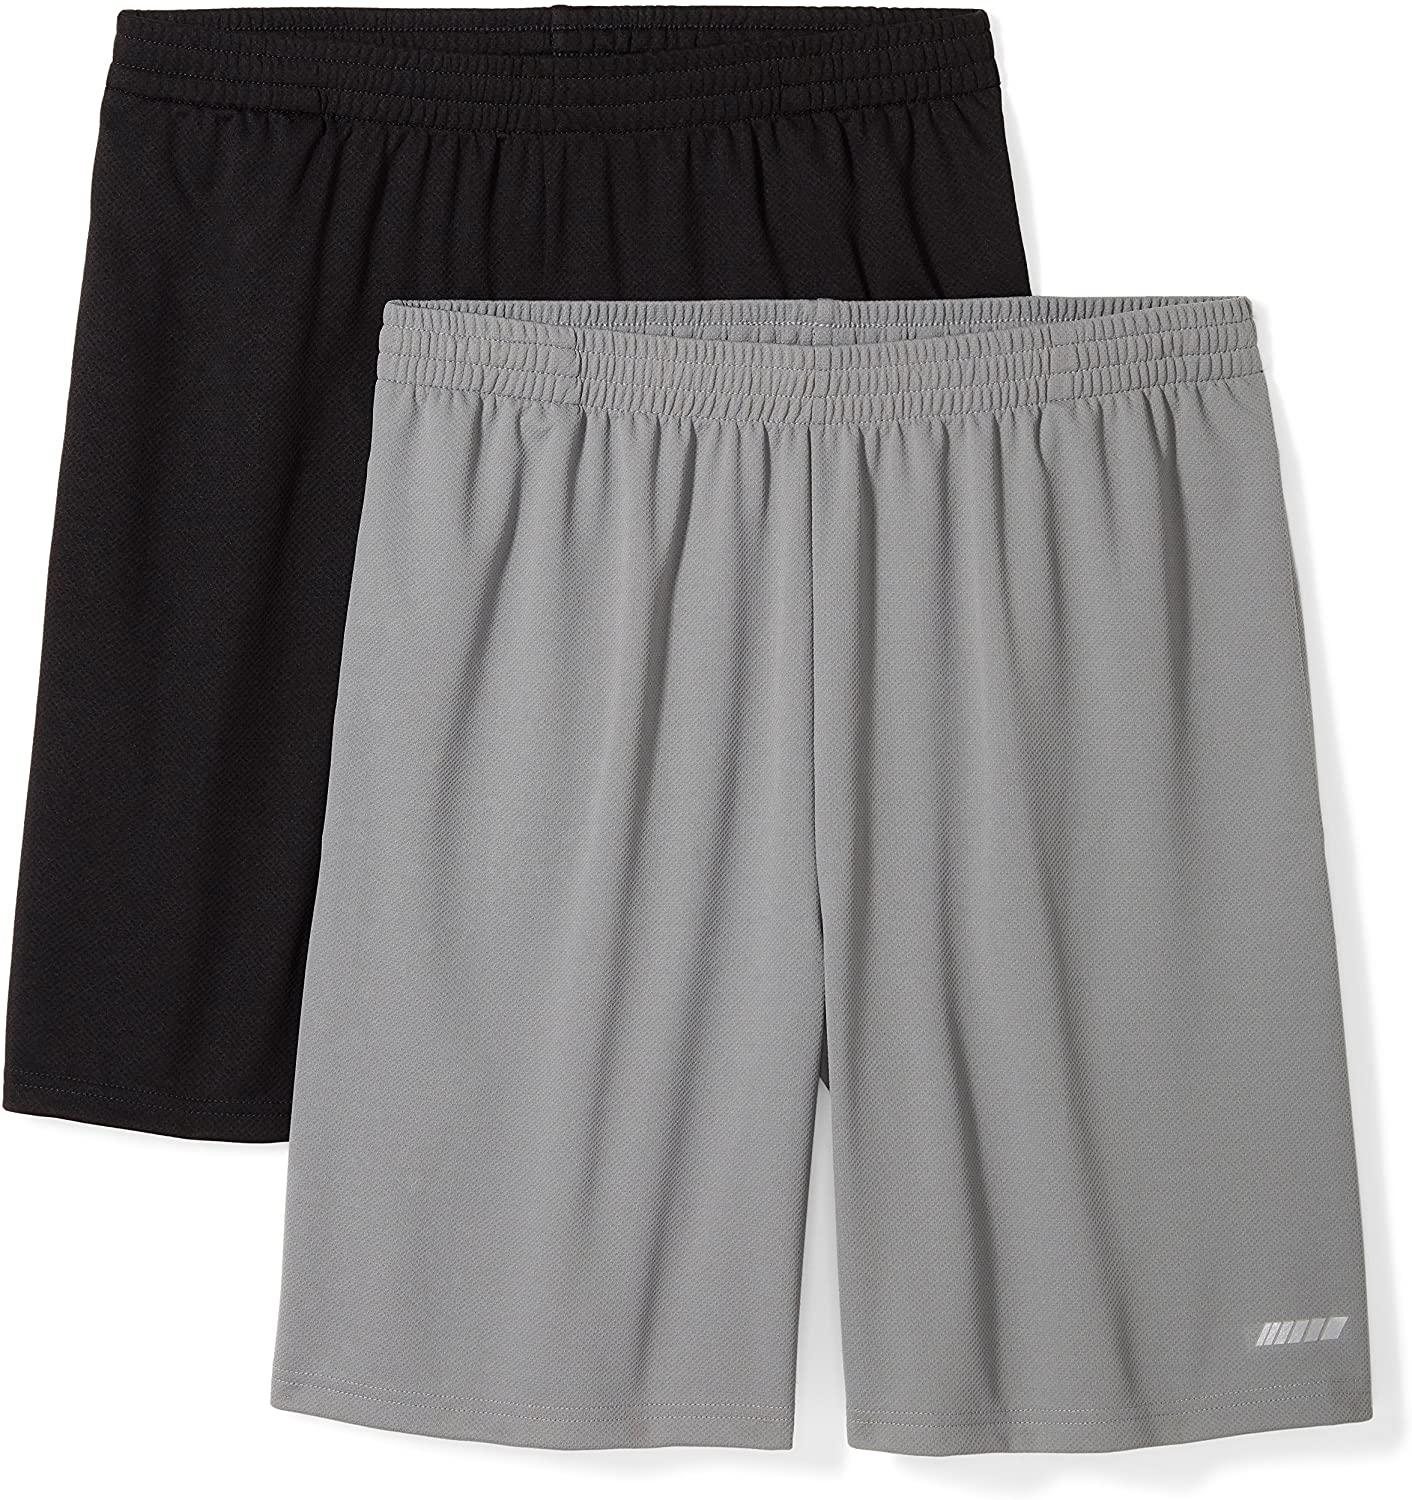 Amazon Essentials Men's Loose Fit Performance shorts two-pack in black and grey, best men's workout shorts